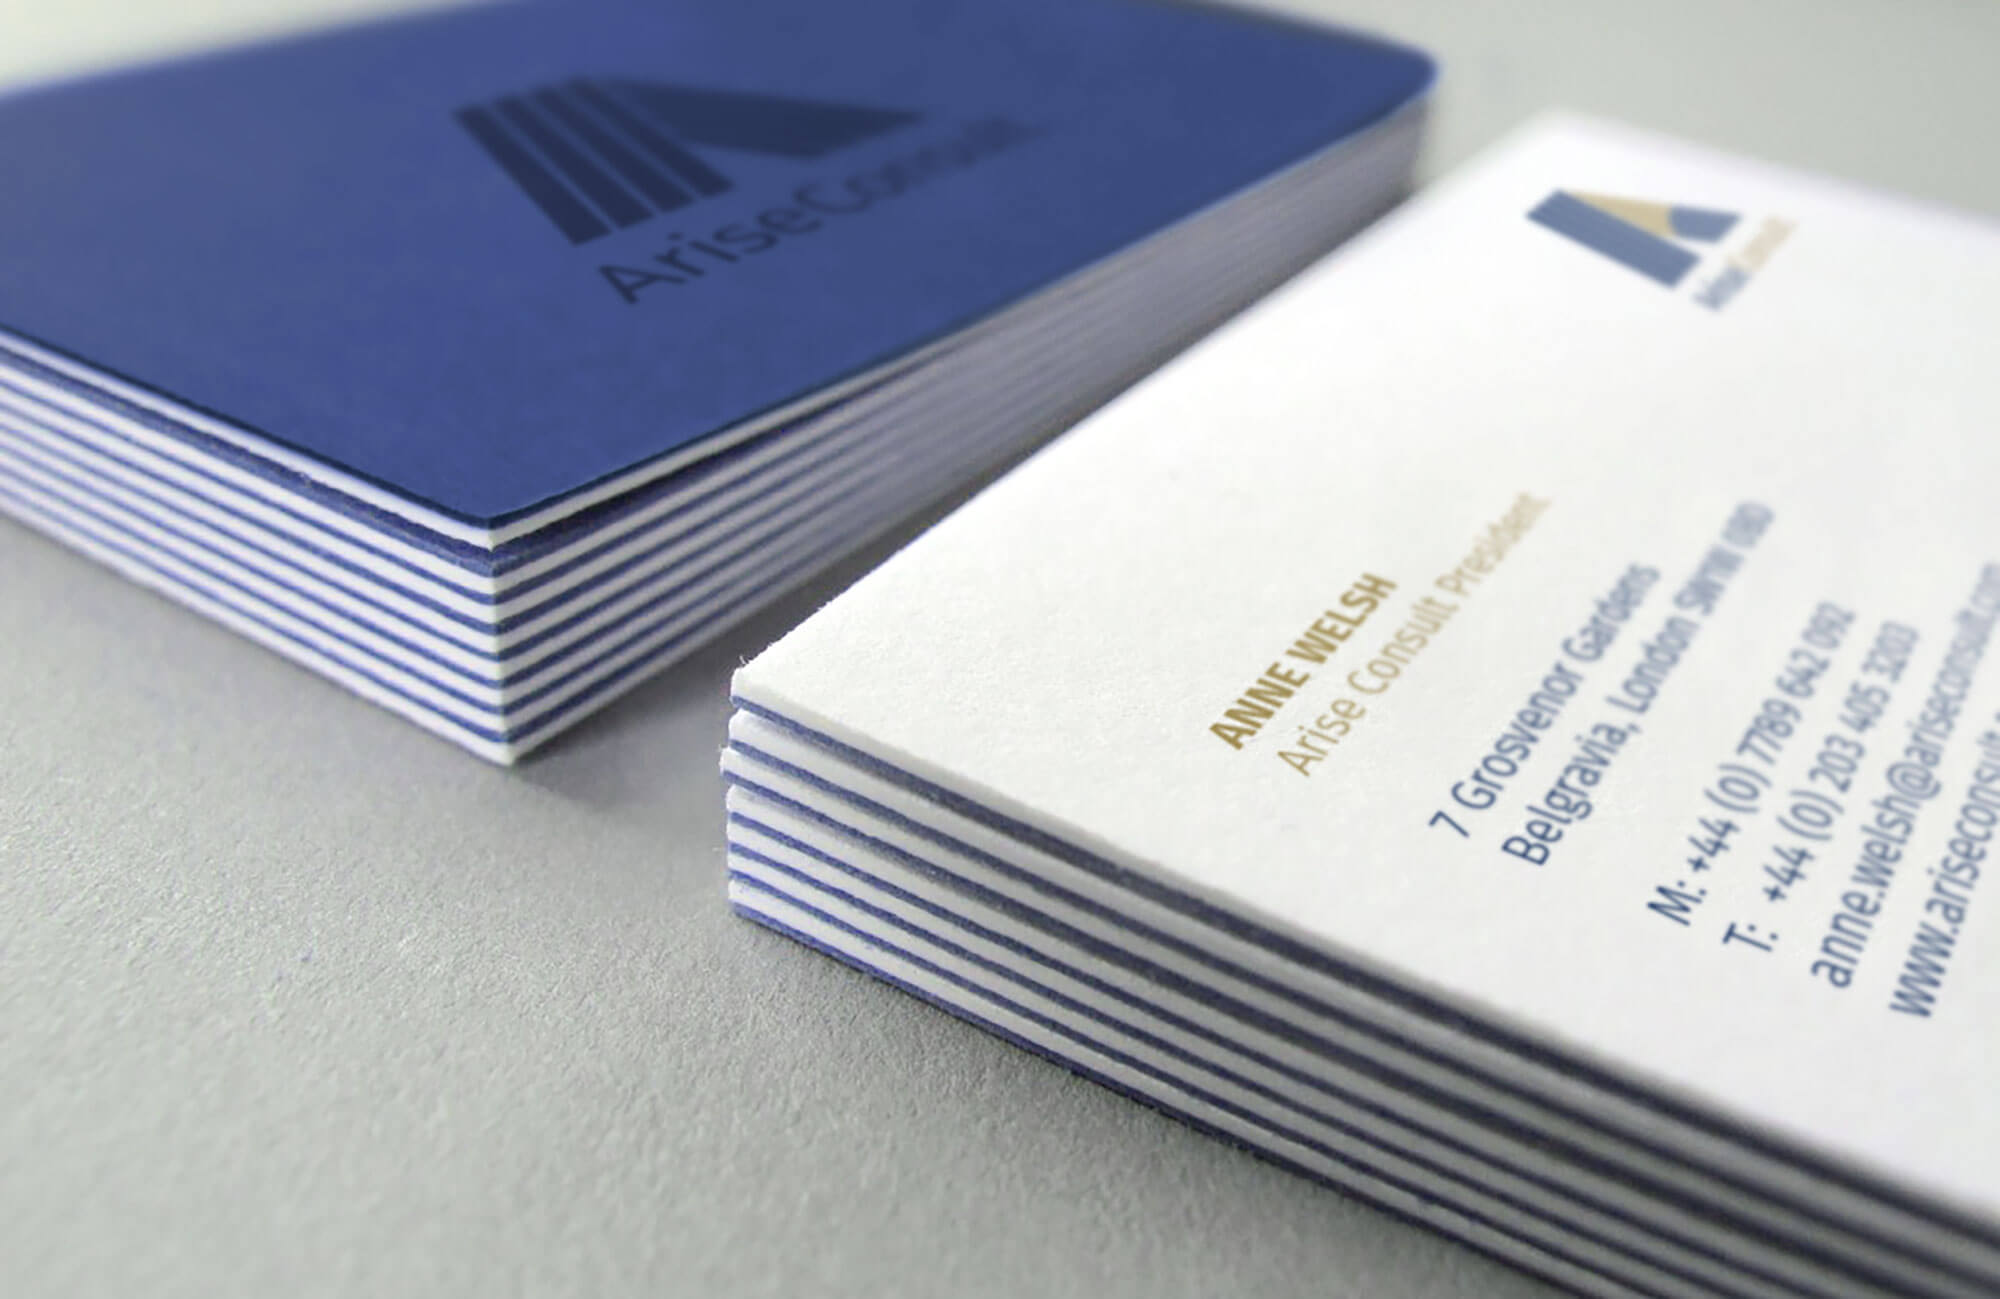 Arise Consult Business Card Design and Printing